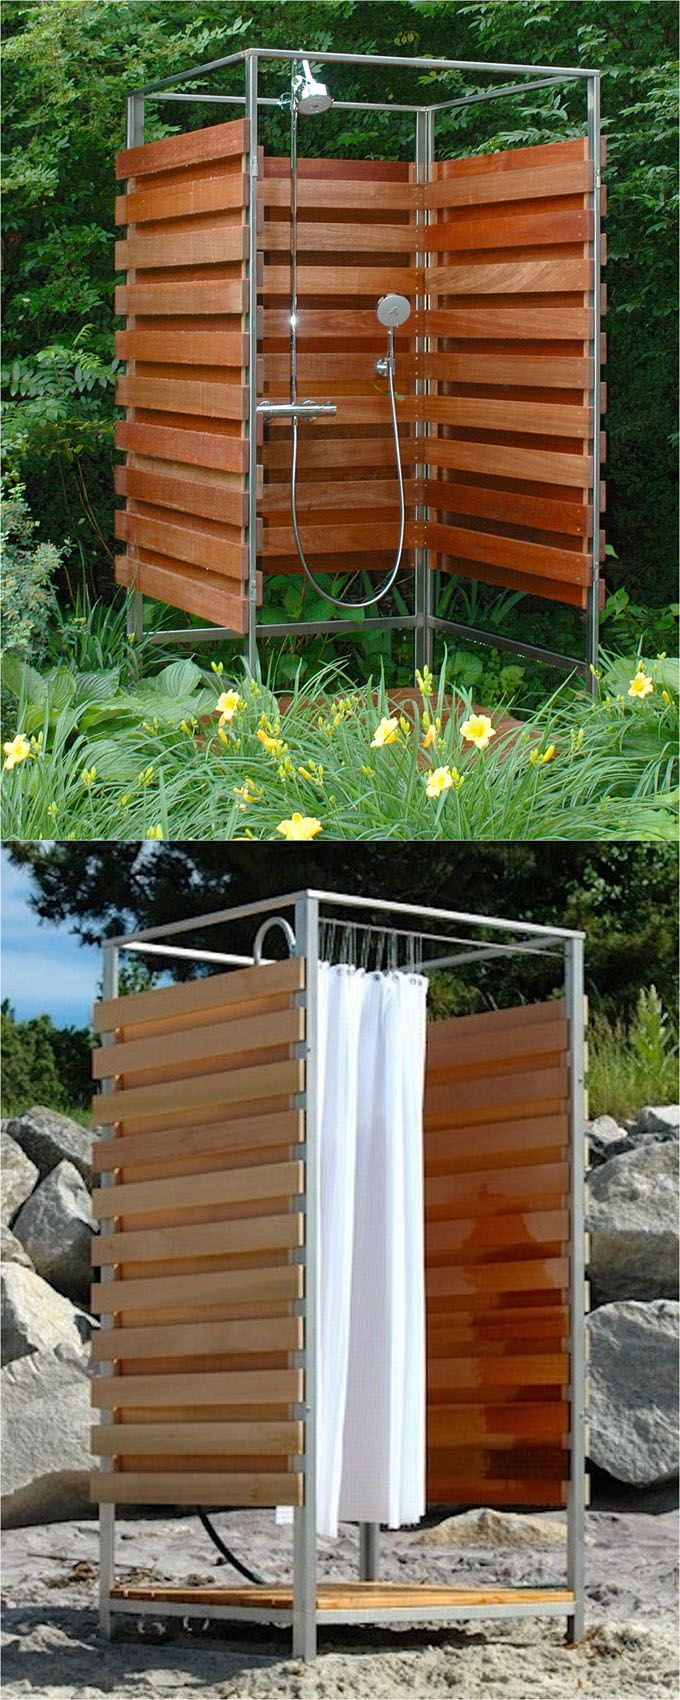 Top 25+ Best Outdoor Shower Enclosure Ideas On Pinterest | Pool Shower,  Above Ground Septic Tank And Outdoor Pool Bathroom